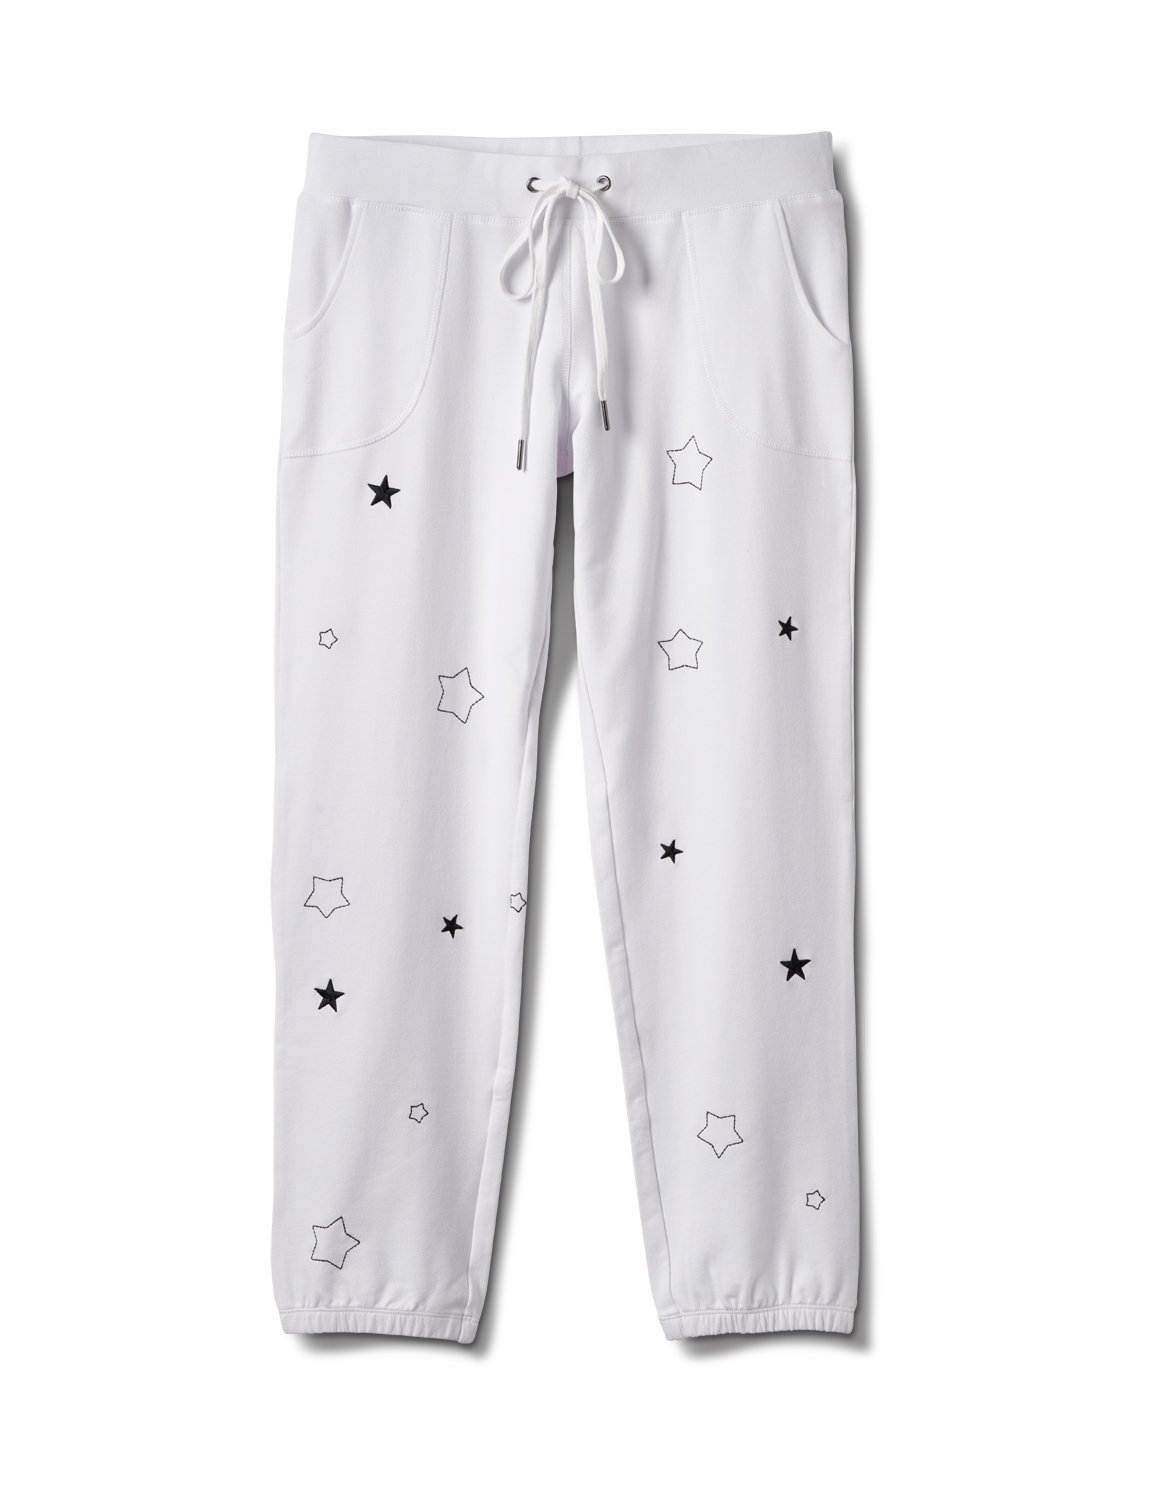 Embroidered Star Knit Pant - Misses -White - Front